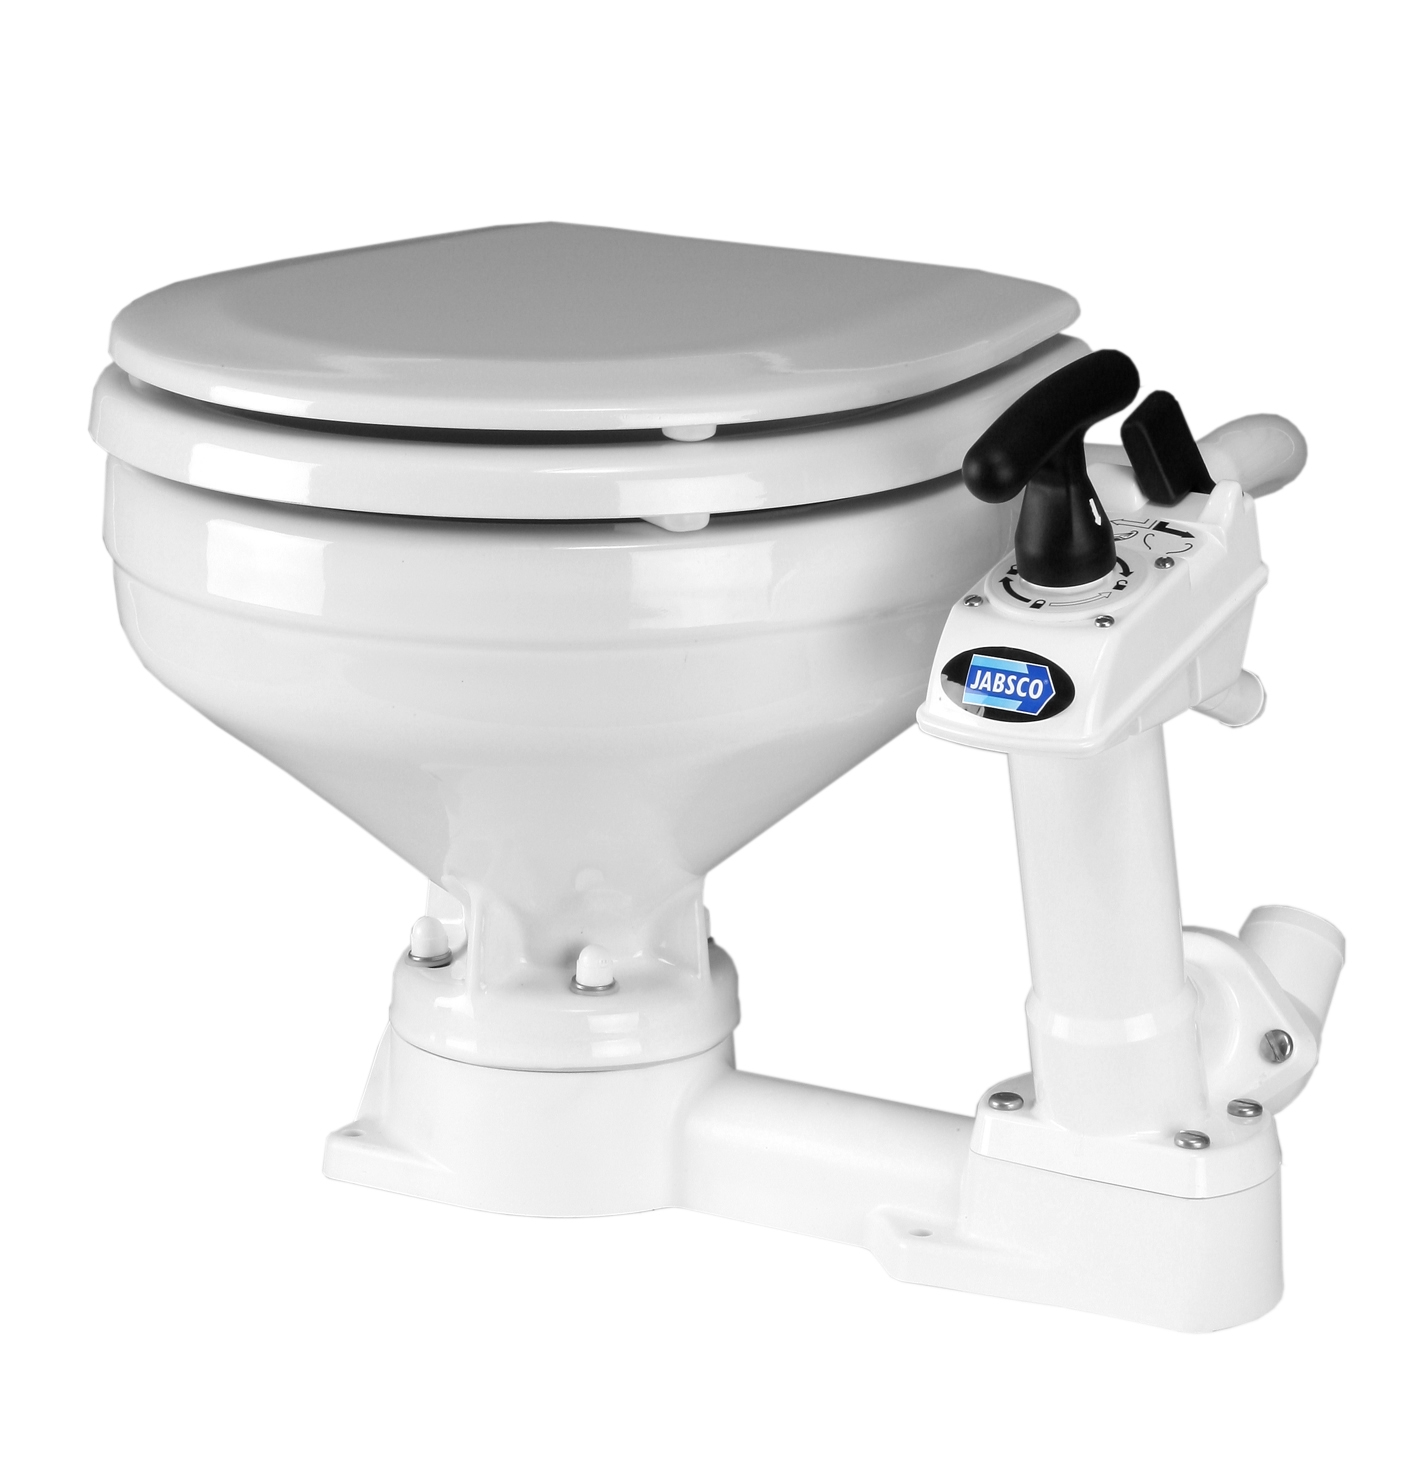 JABSCO TOILETS & WASTE PUMPS